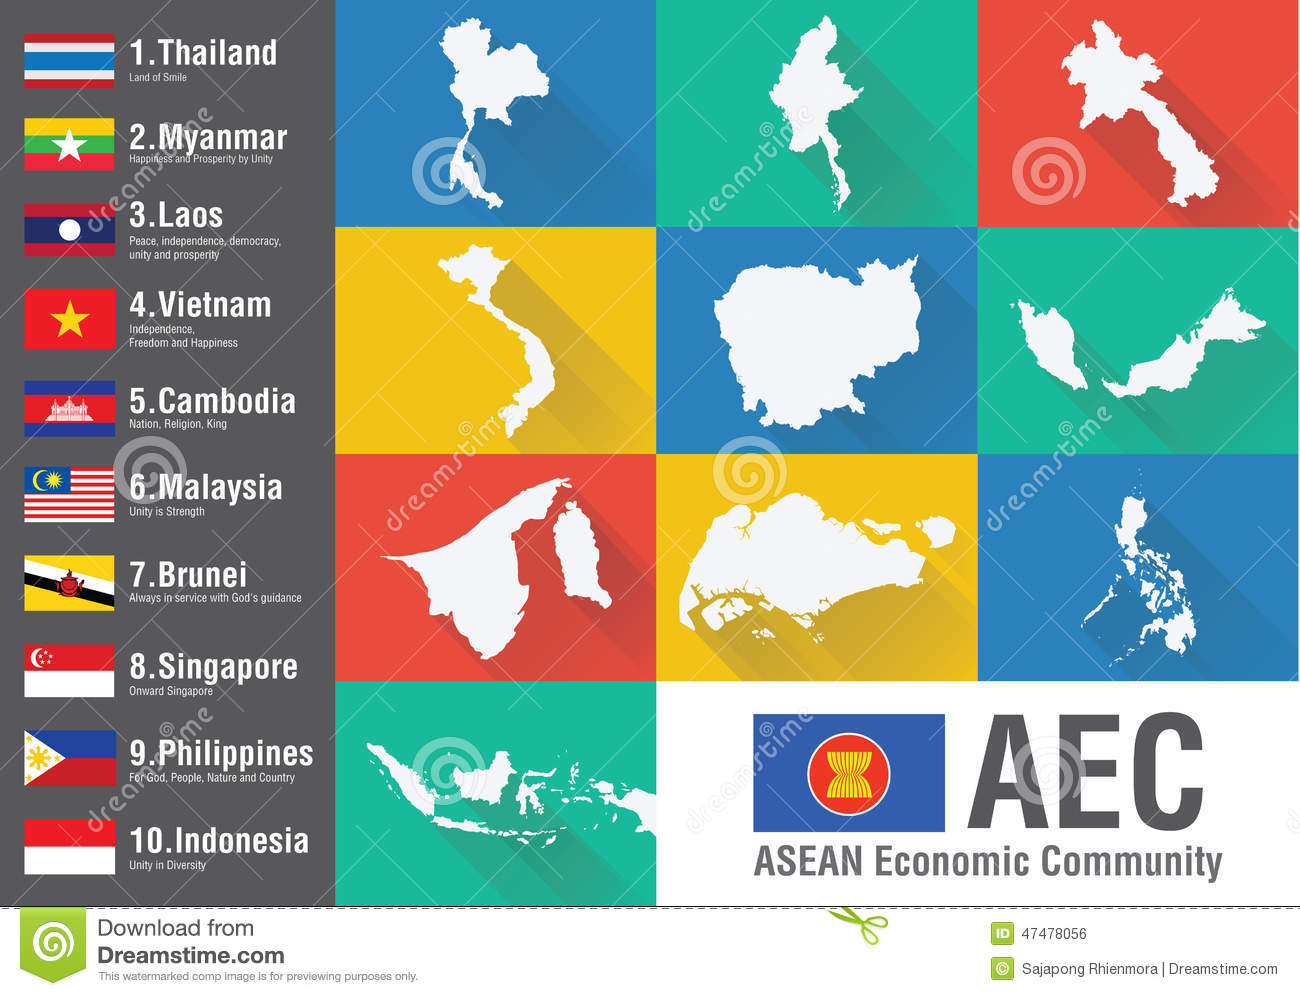 Aec asean economic community world map with a flat style and fla aec asean economic community world map with a flat style and fla gumiabroncs Gallery